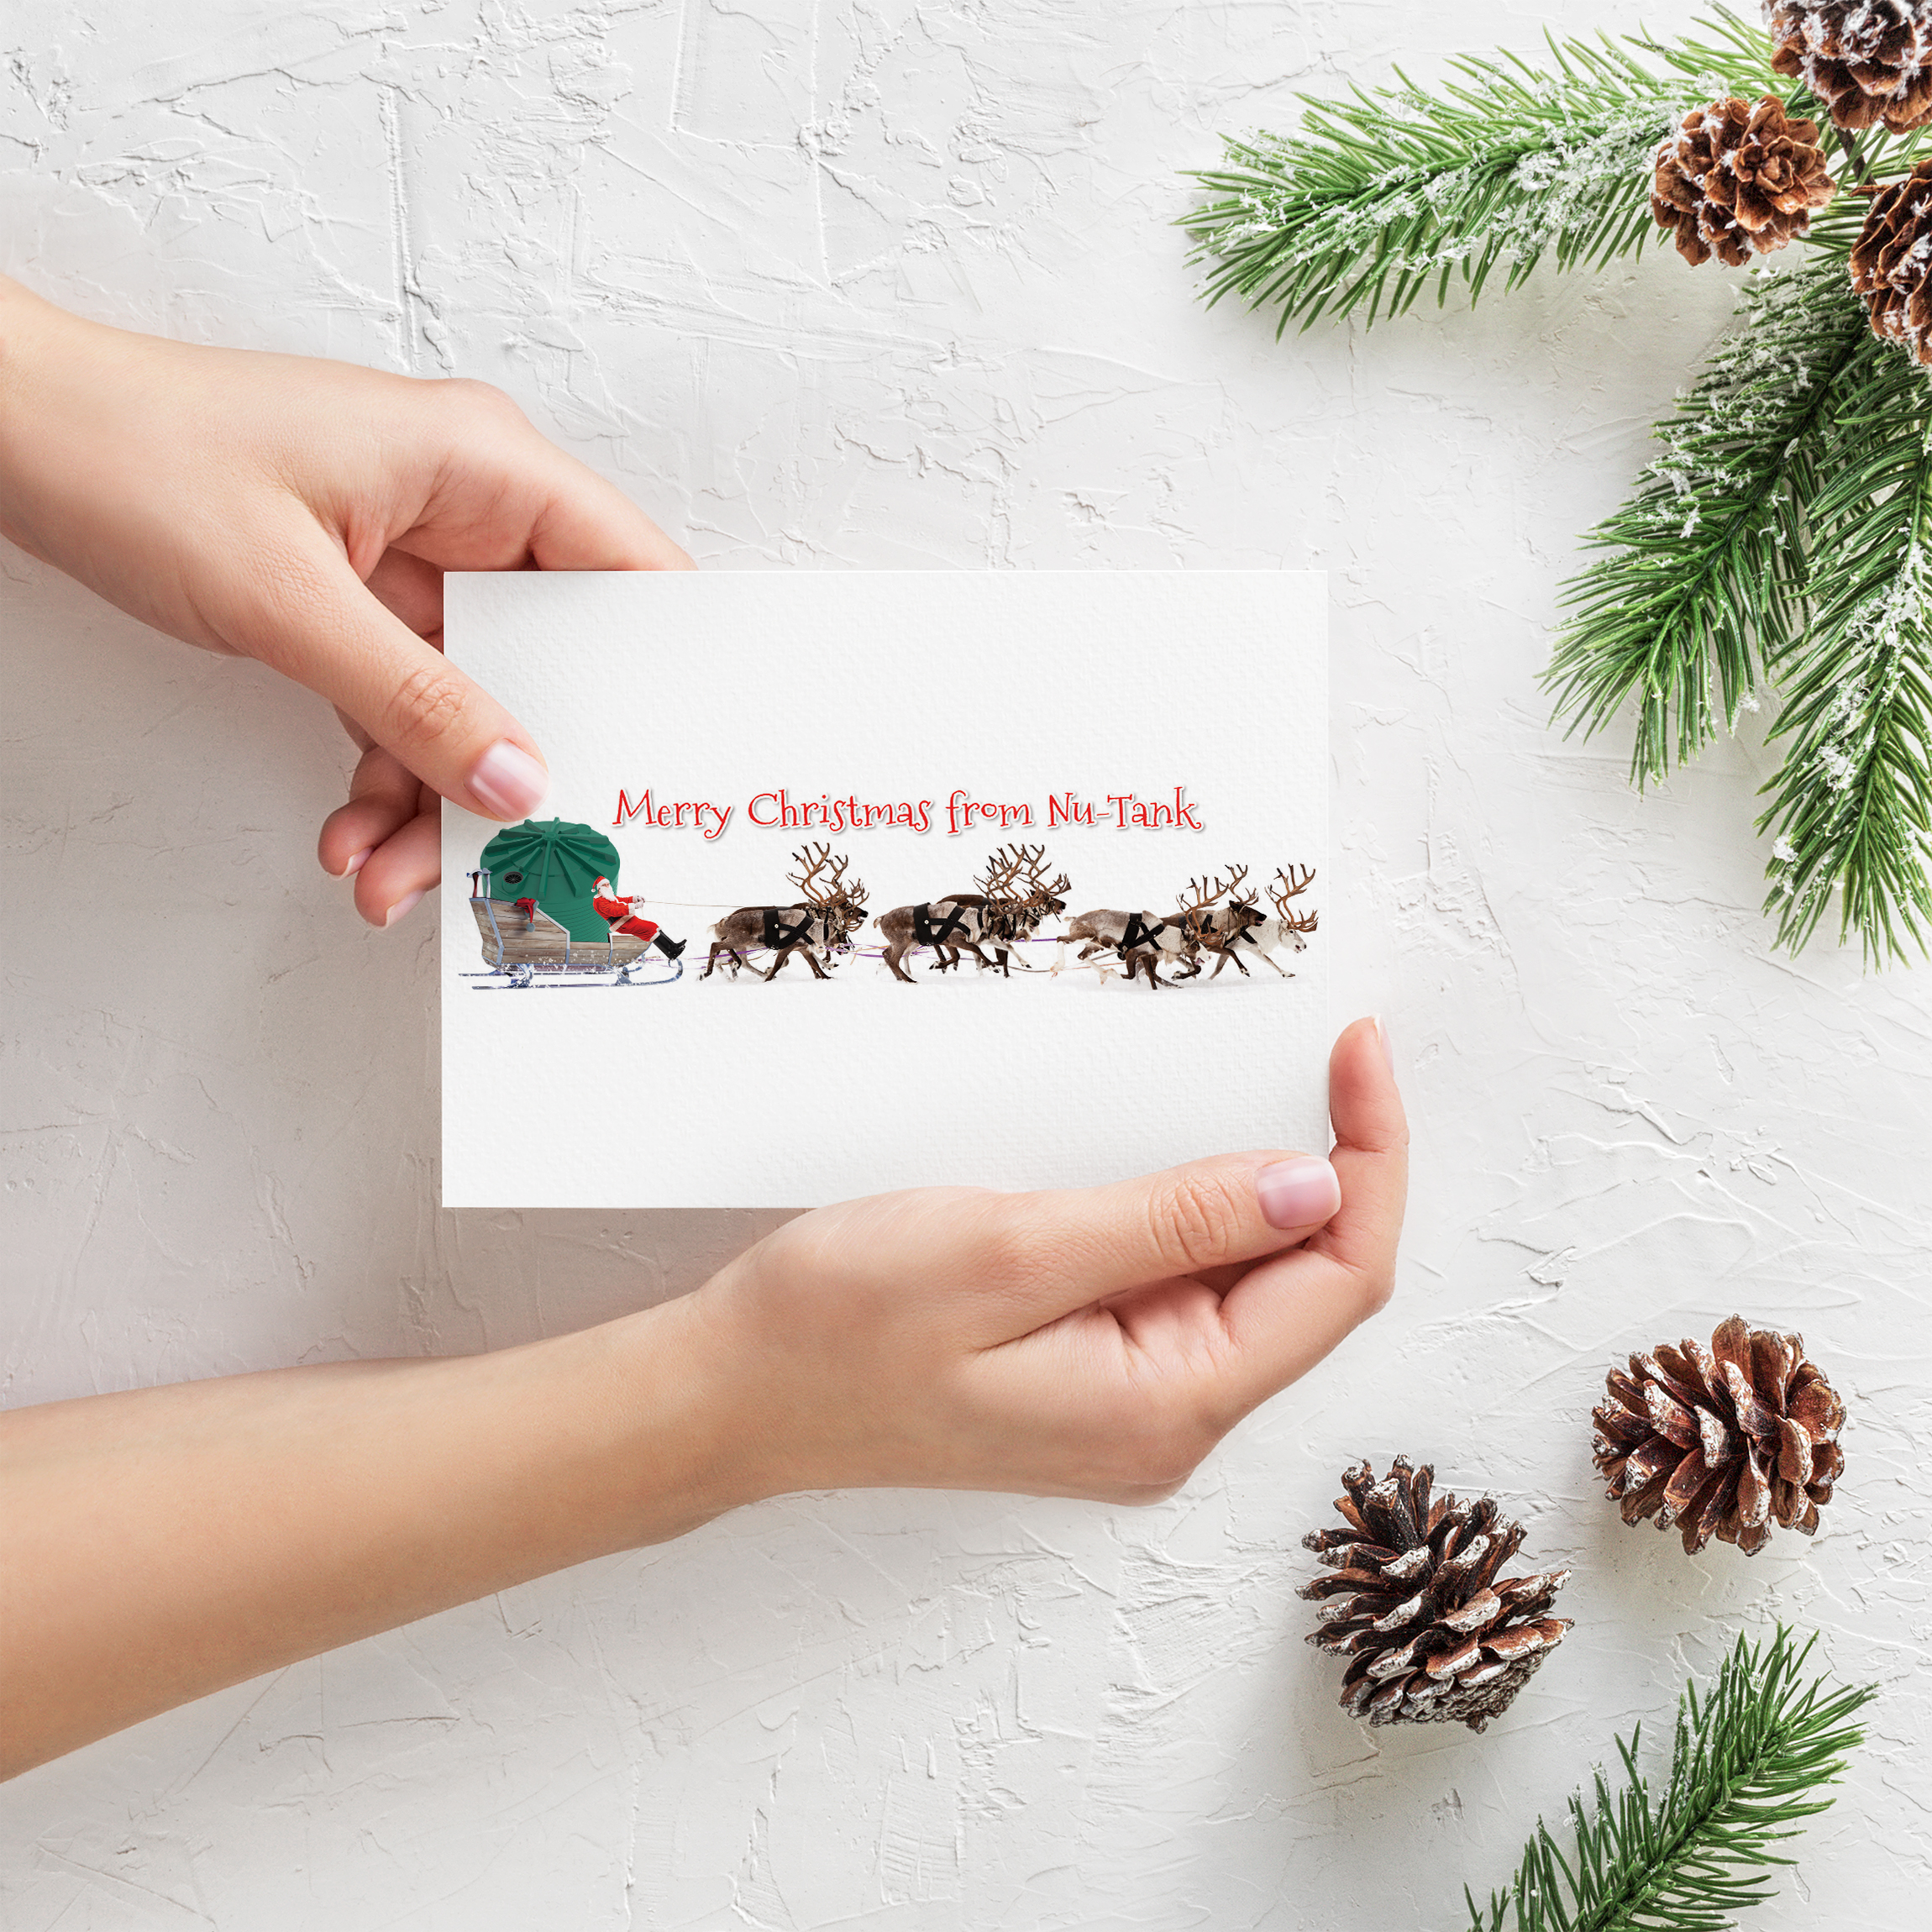 APAP Events Event Management and Graphic Design Rockhampton Nu-Tank Christmas Card Design